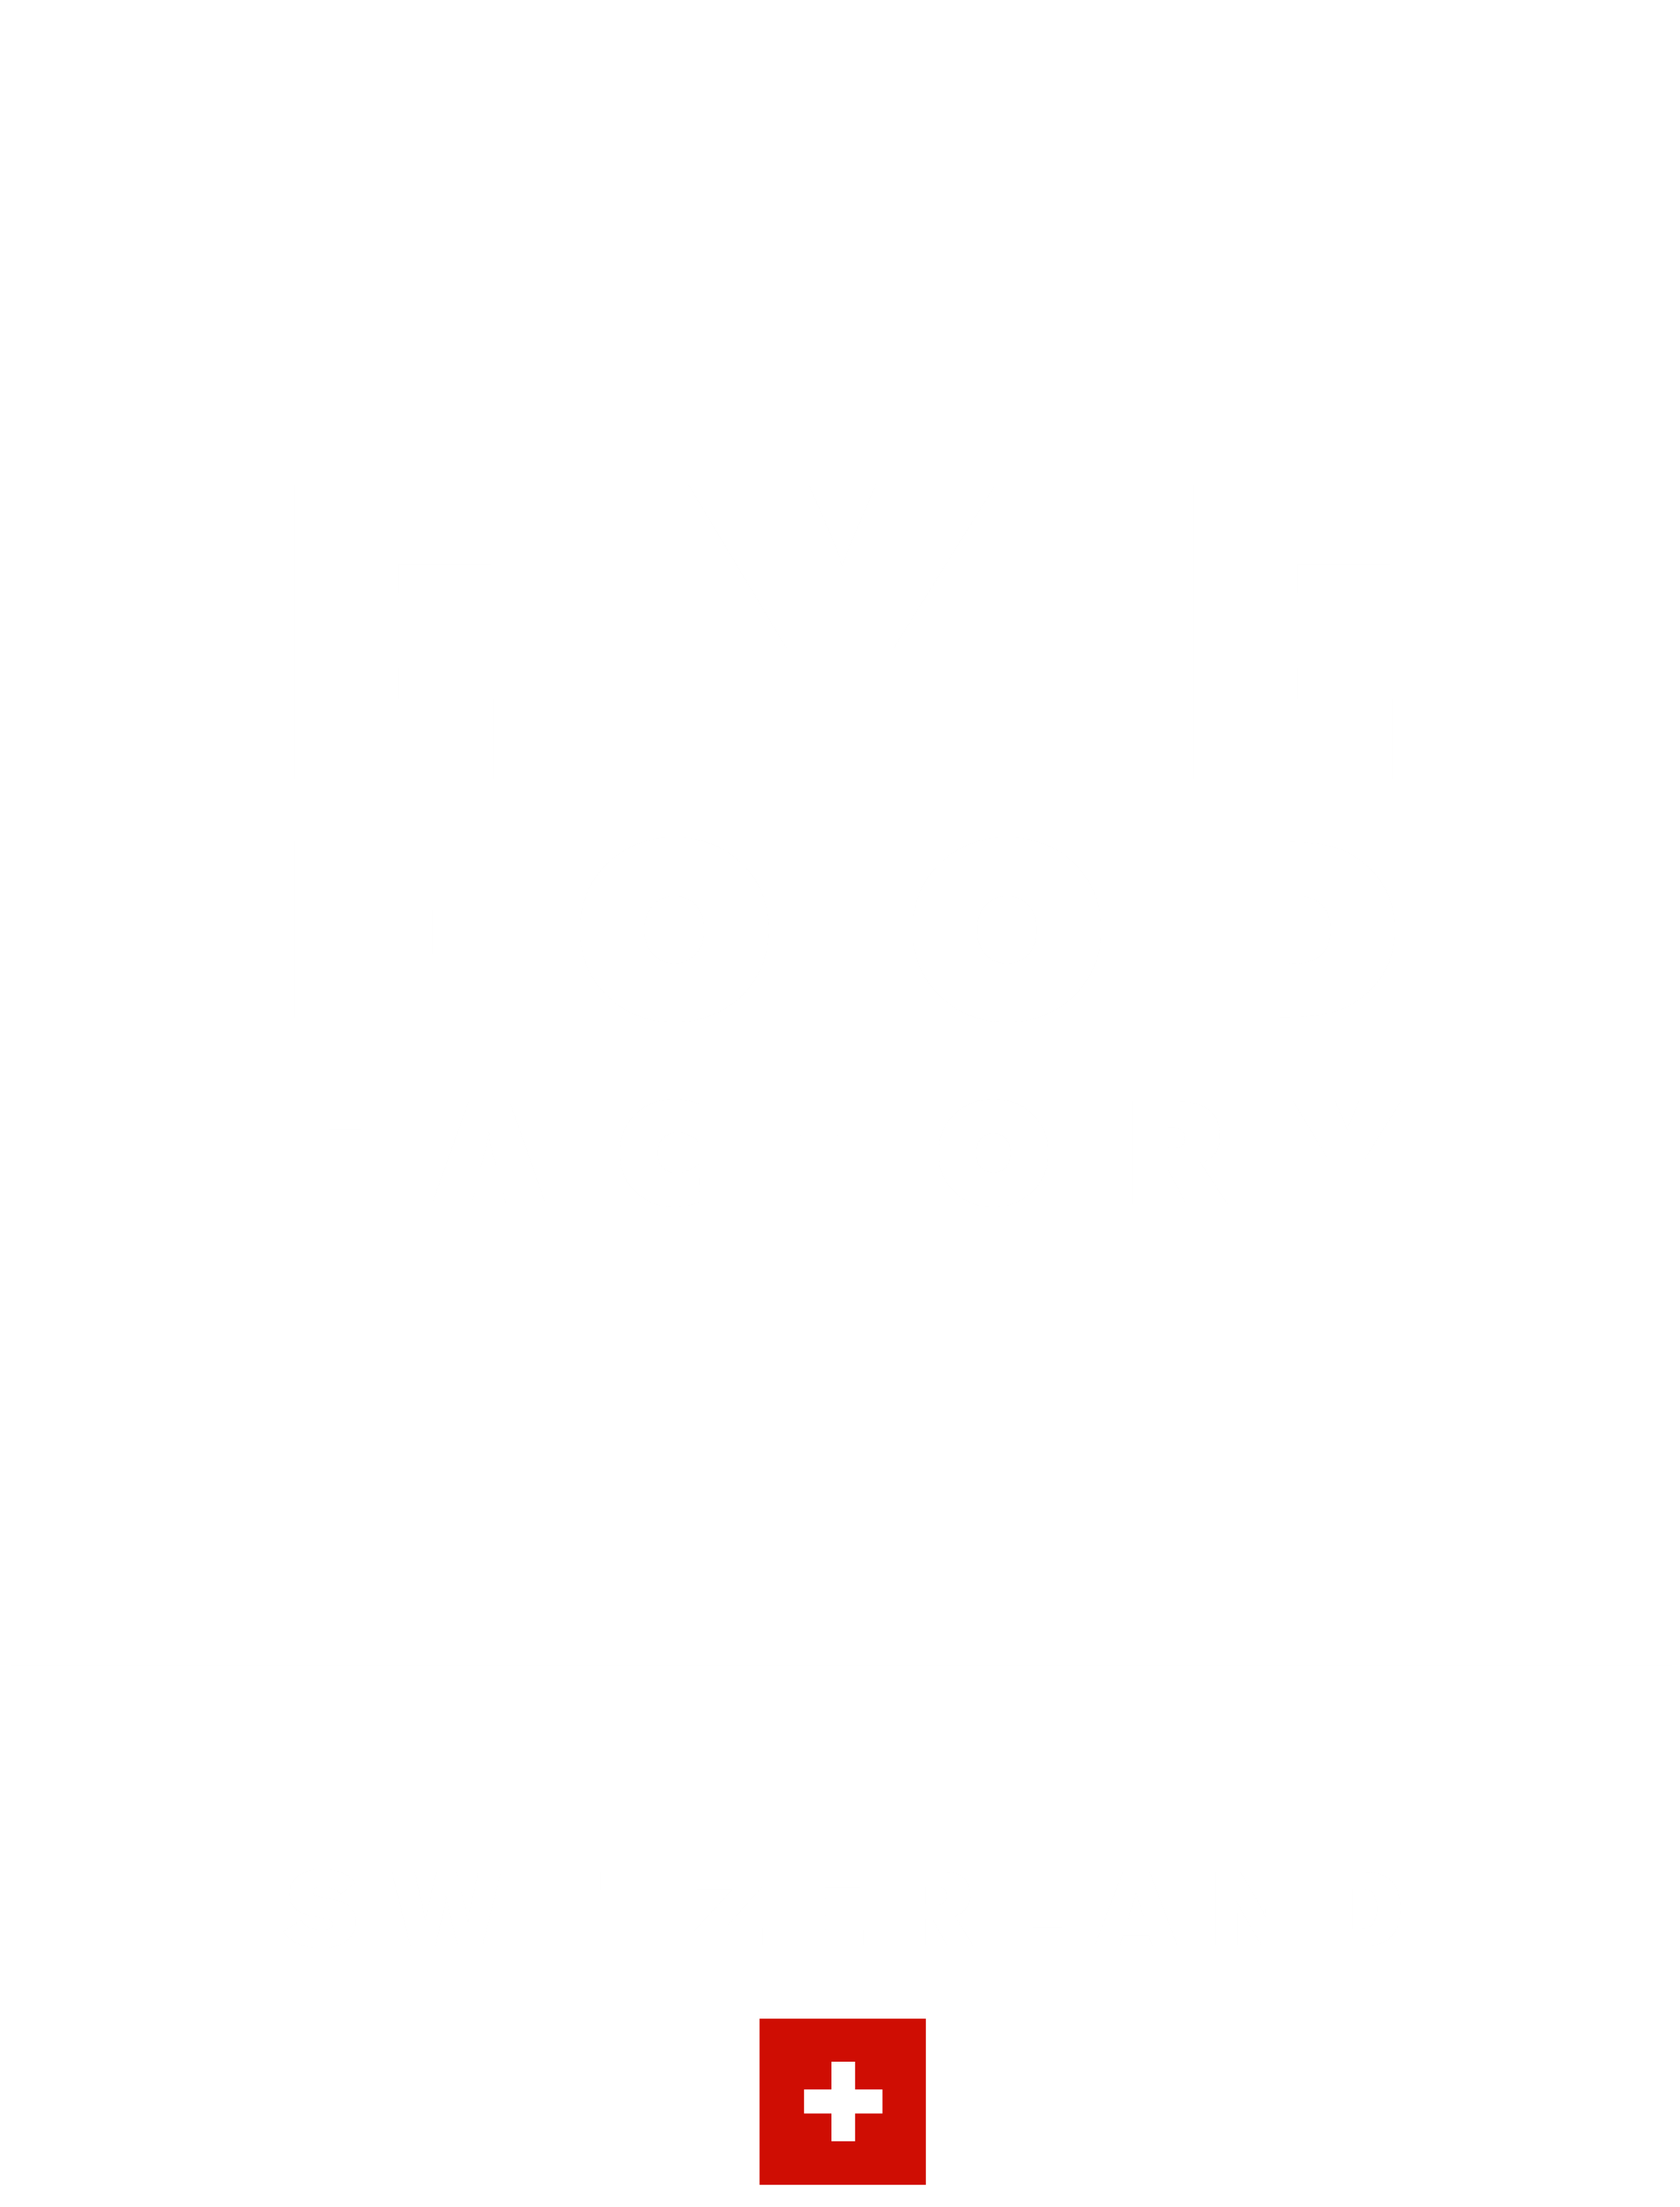 Eyefood Factory Switzerland